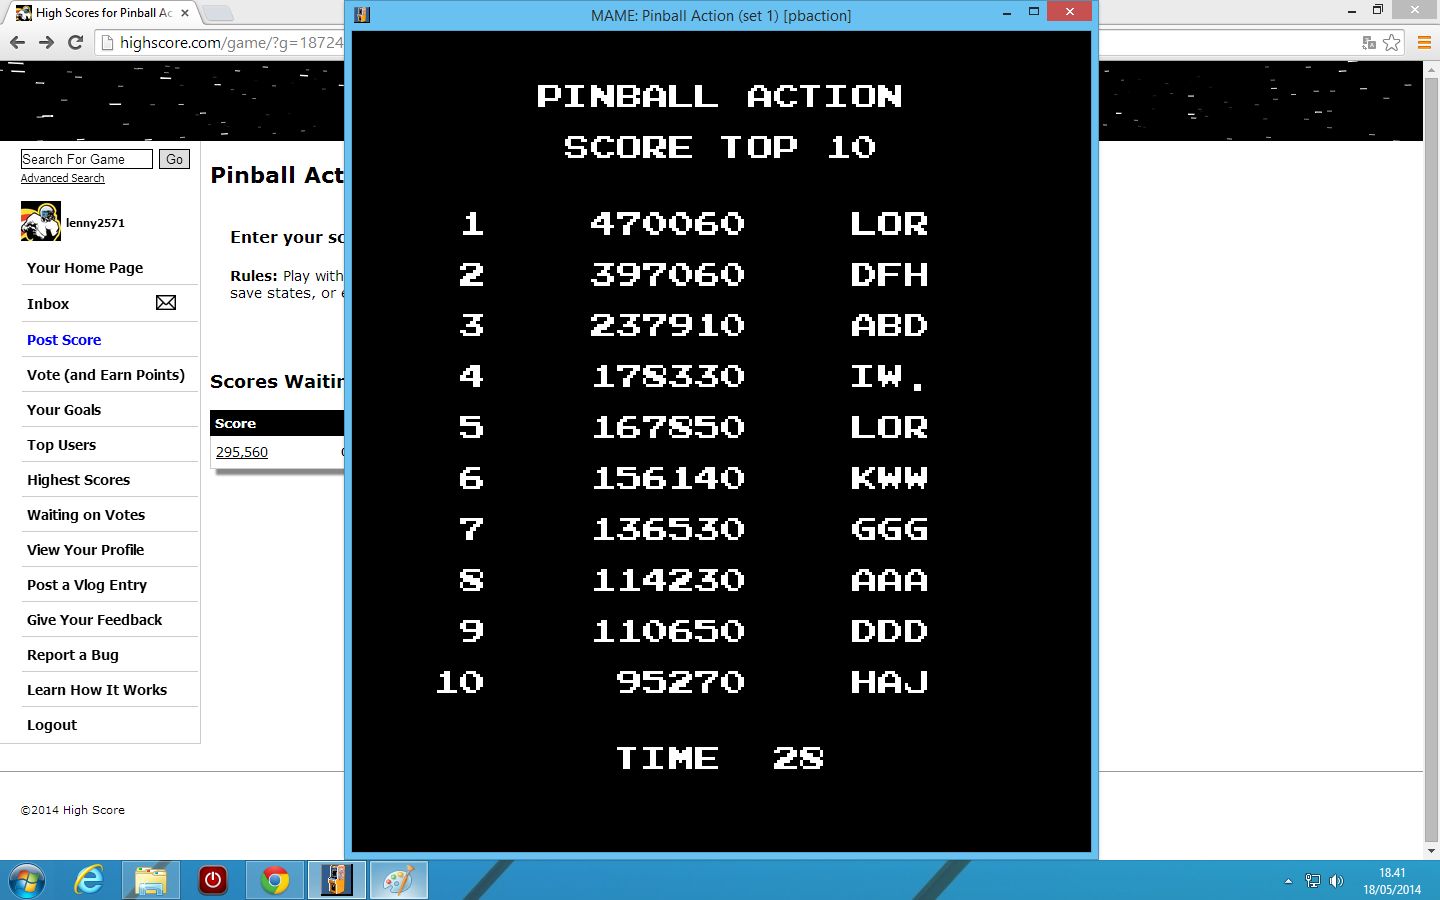 Pinball Action [pbaction] 470,060 points